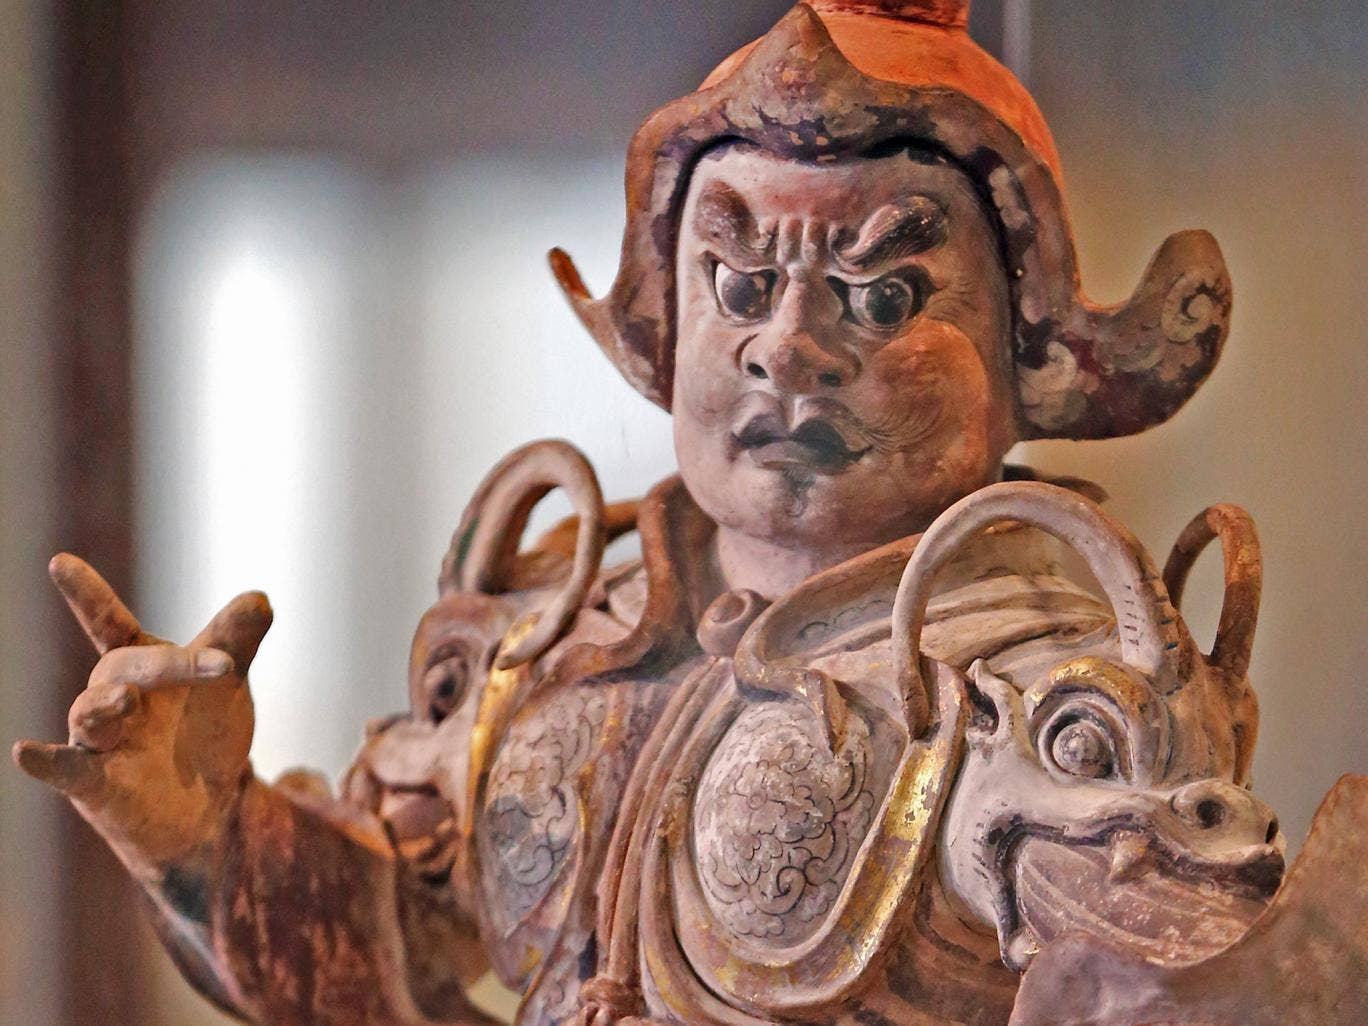 Figures such as this 7th or 8th century tomb guardian show a new side to China